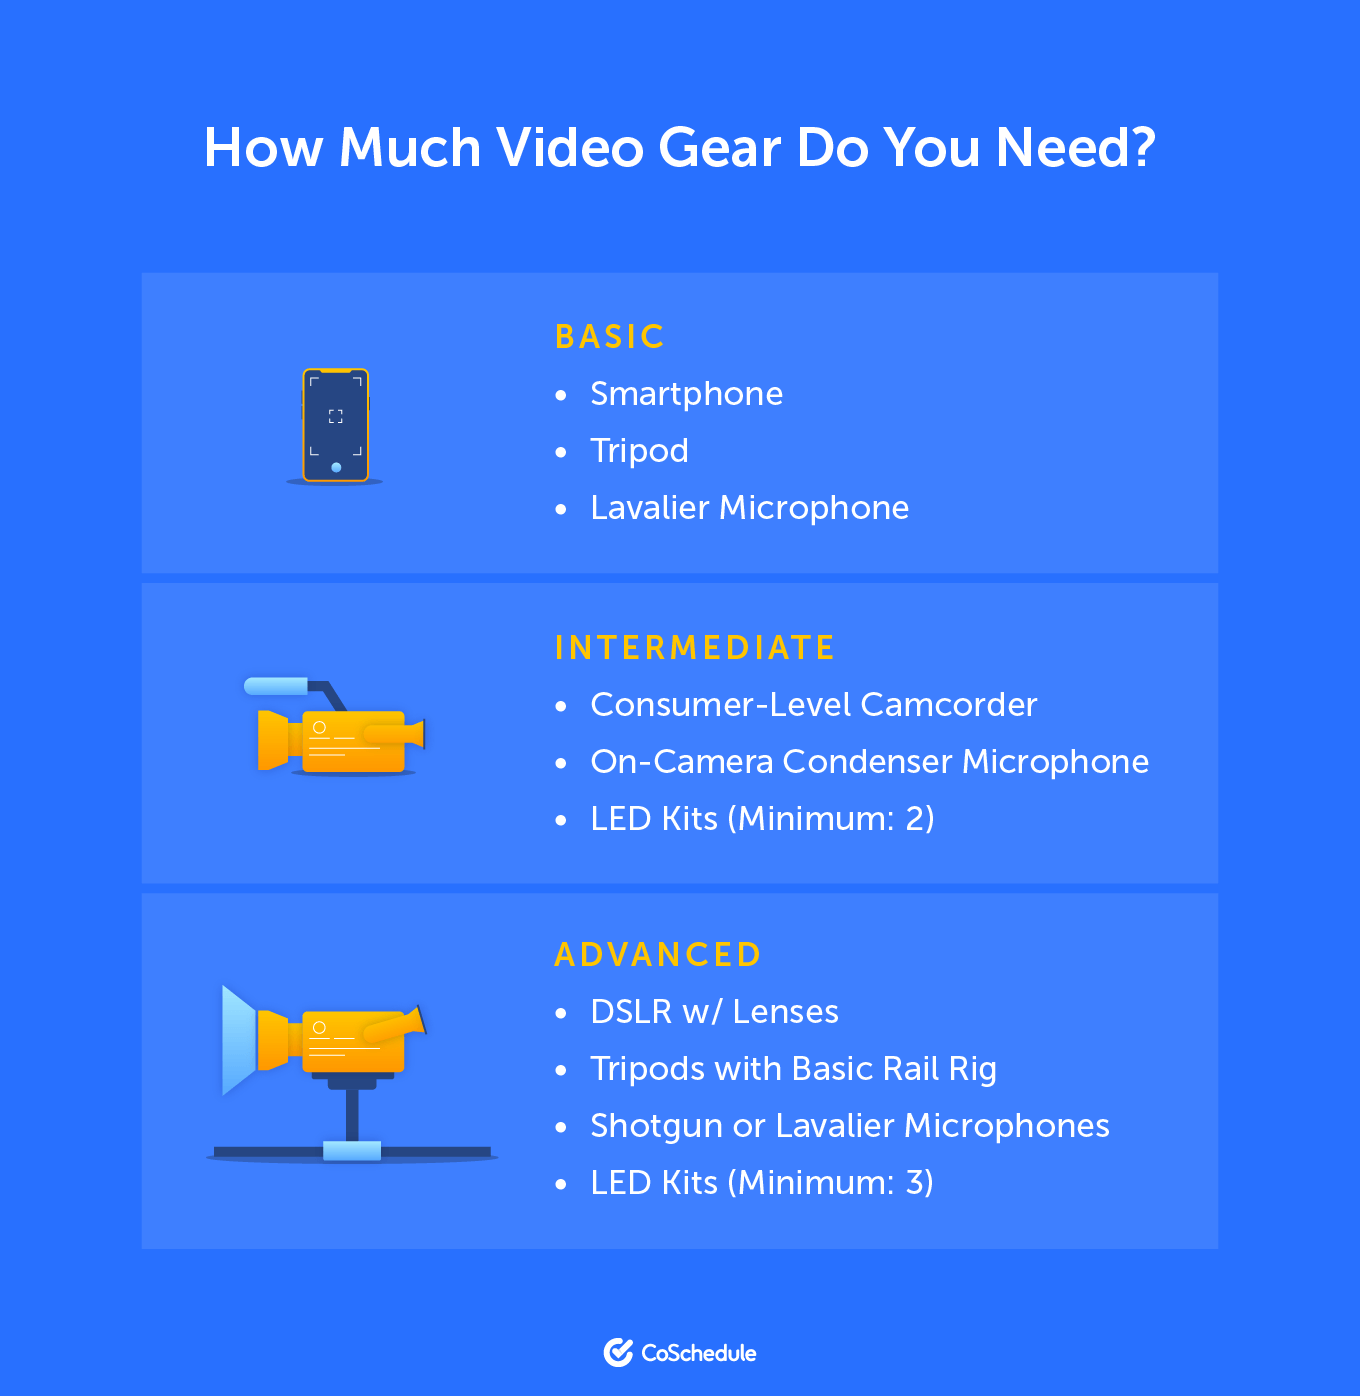 Chart showing which video gear you would need based on your circumstances